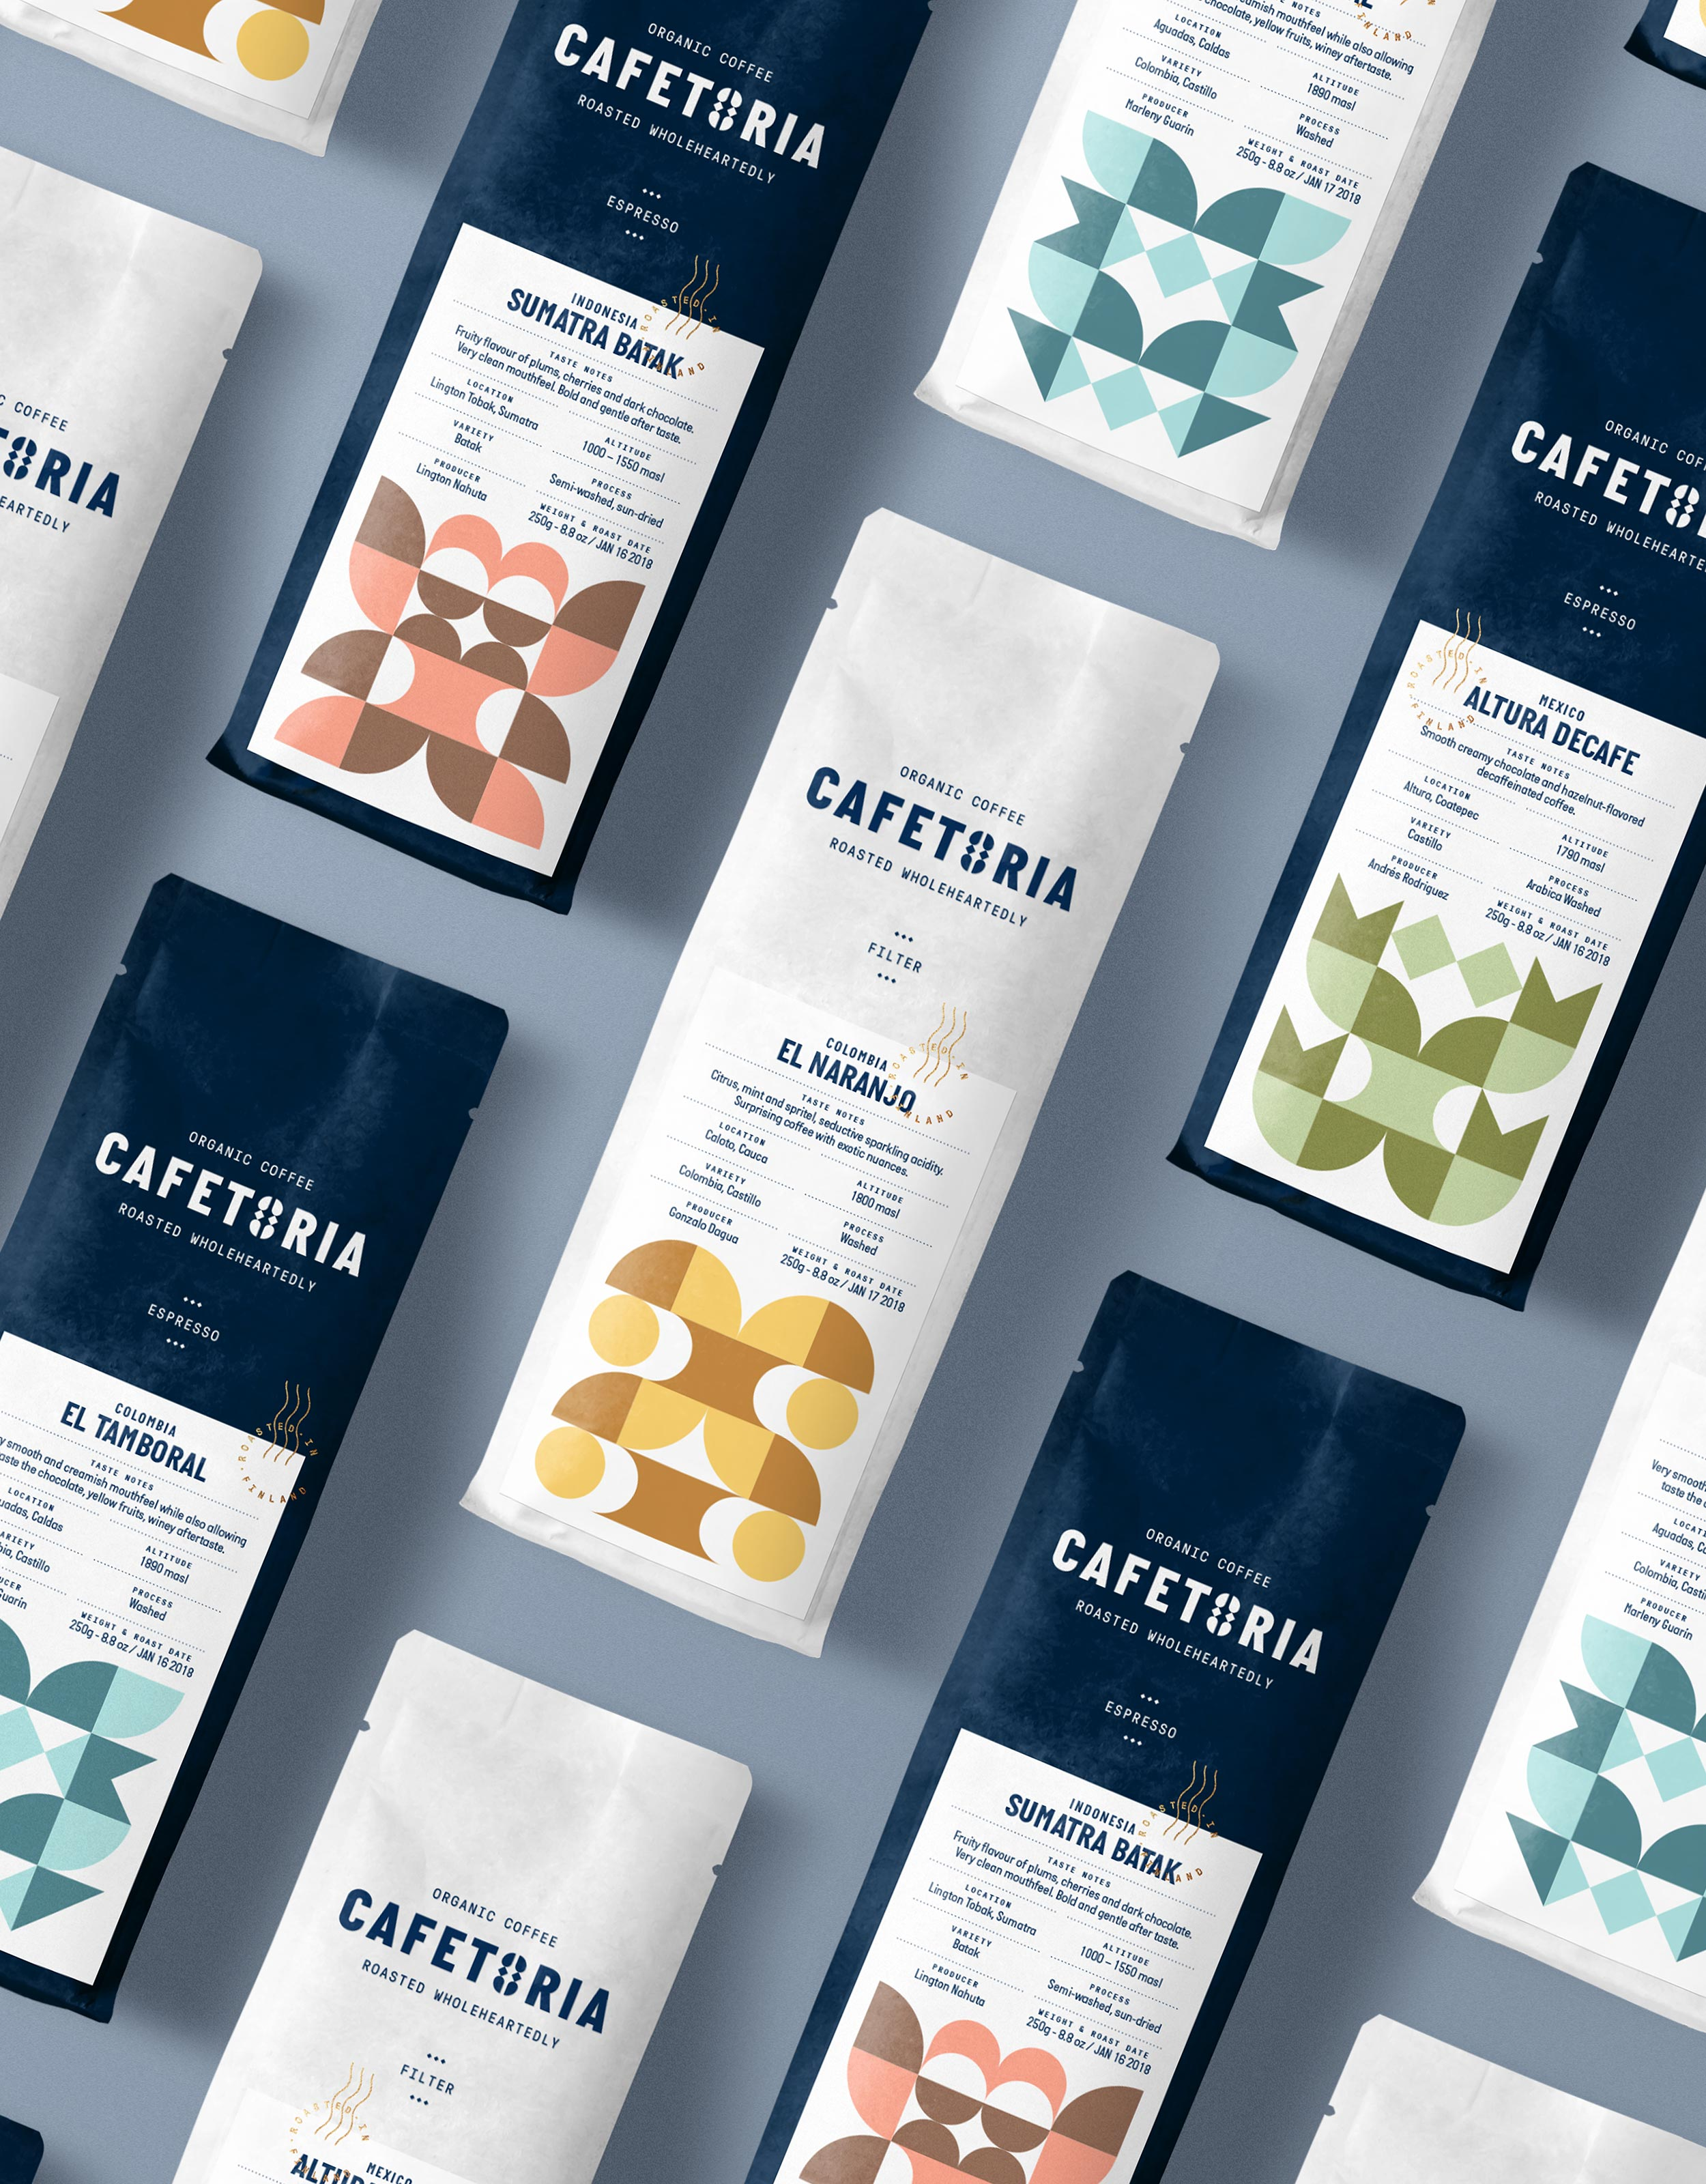 Diferente_Cafetoria_Packaging_Set_Perspective_HR